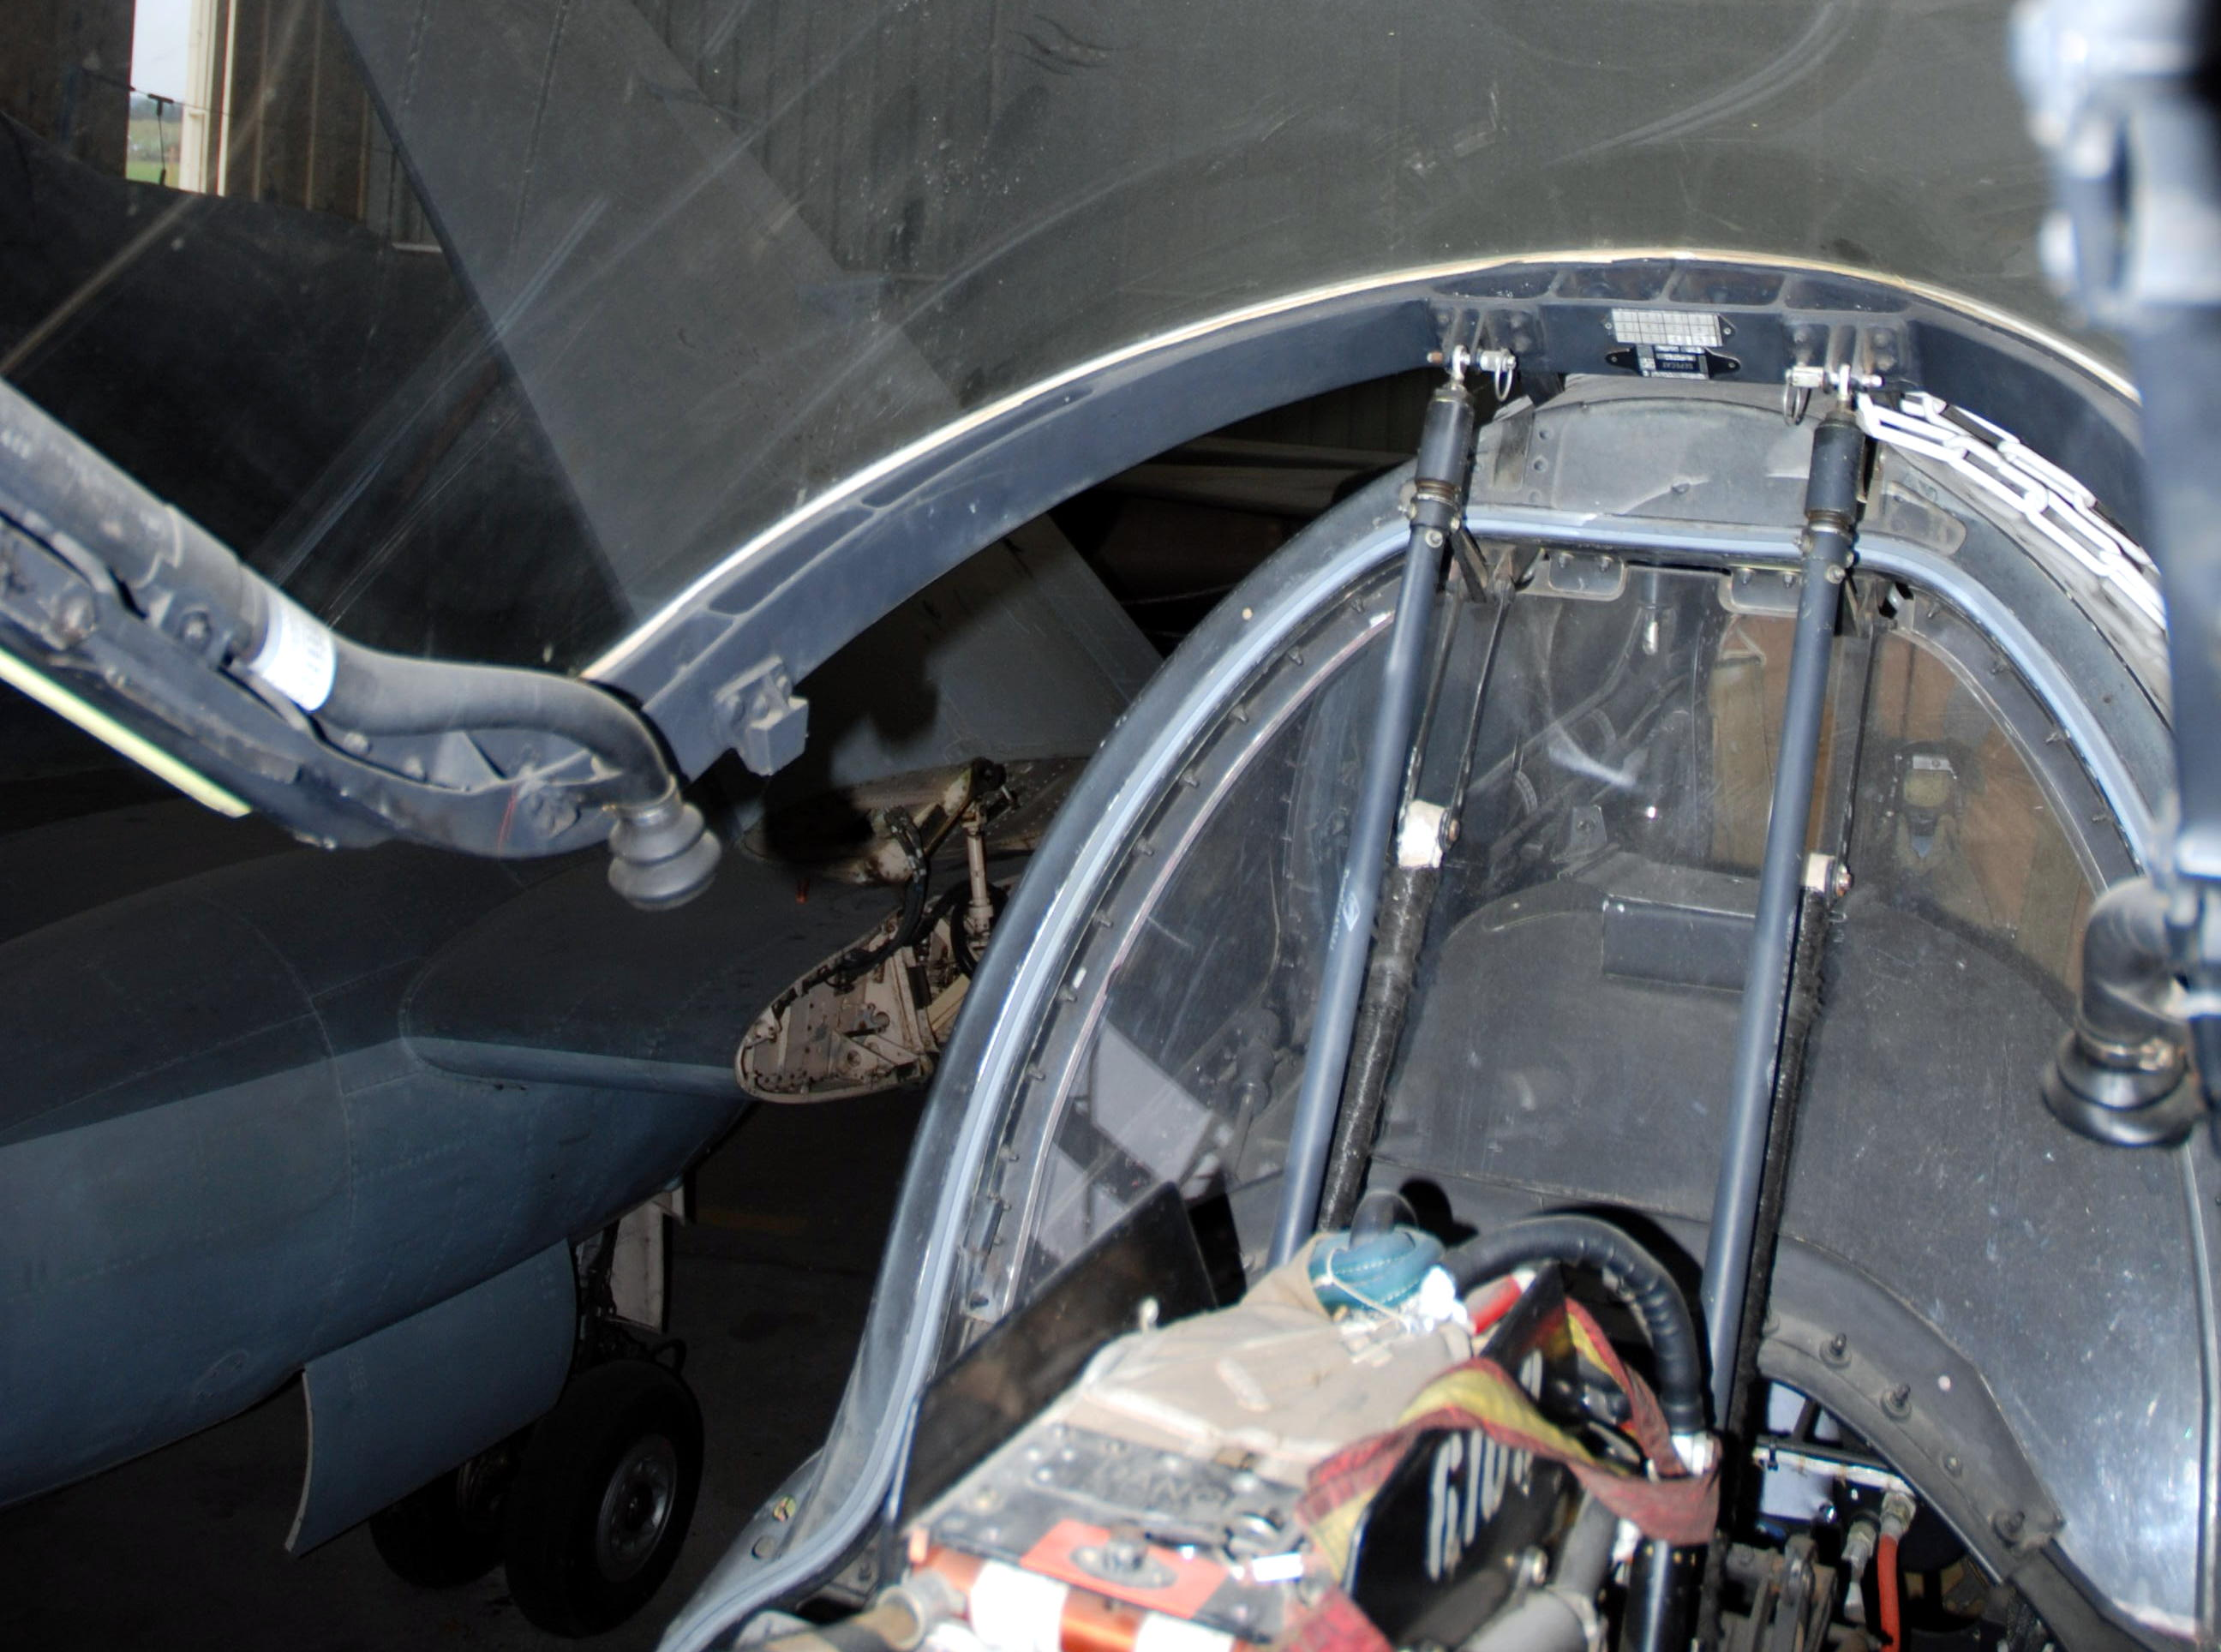 filejaguar cockpit canopy actuator detail muse de laviation clment ader - Open Canopy 2016